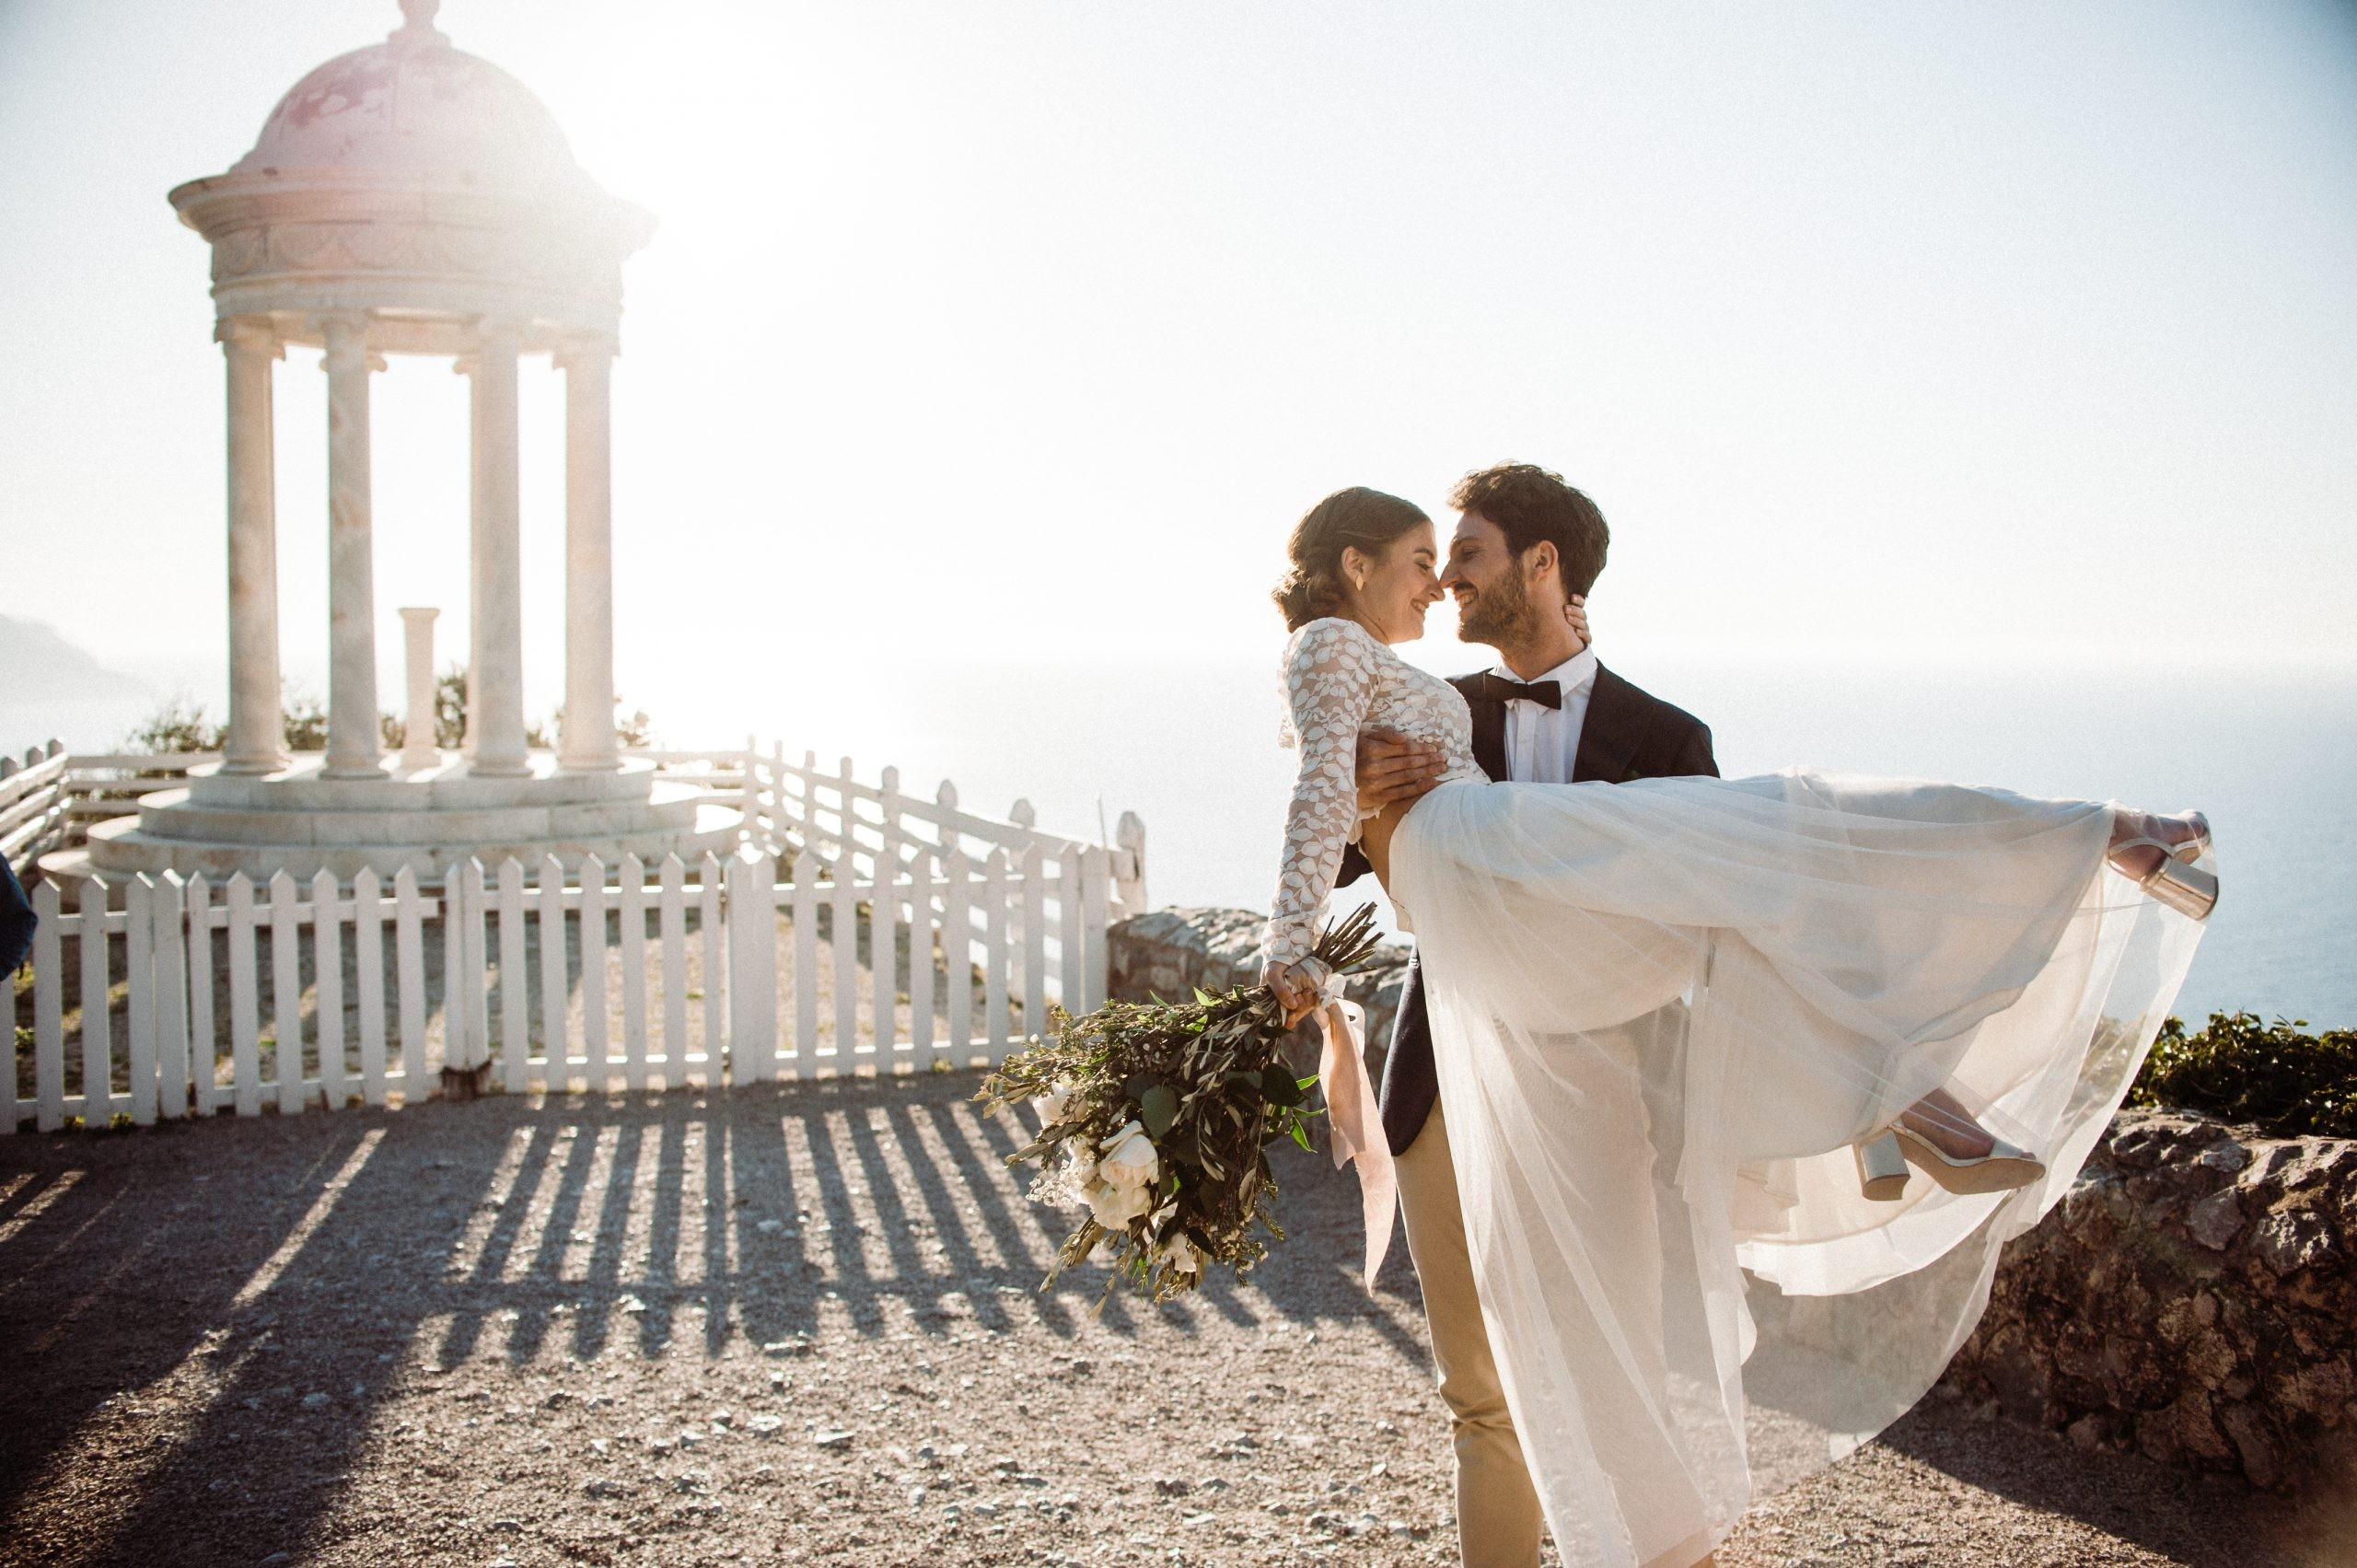 Groom holding bride in romantic destination wedding on a Spanish Island